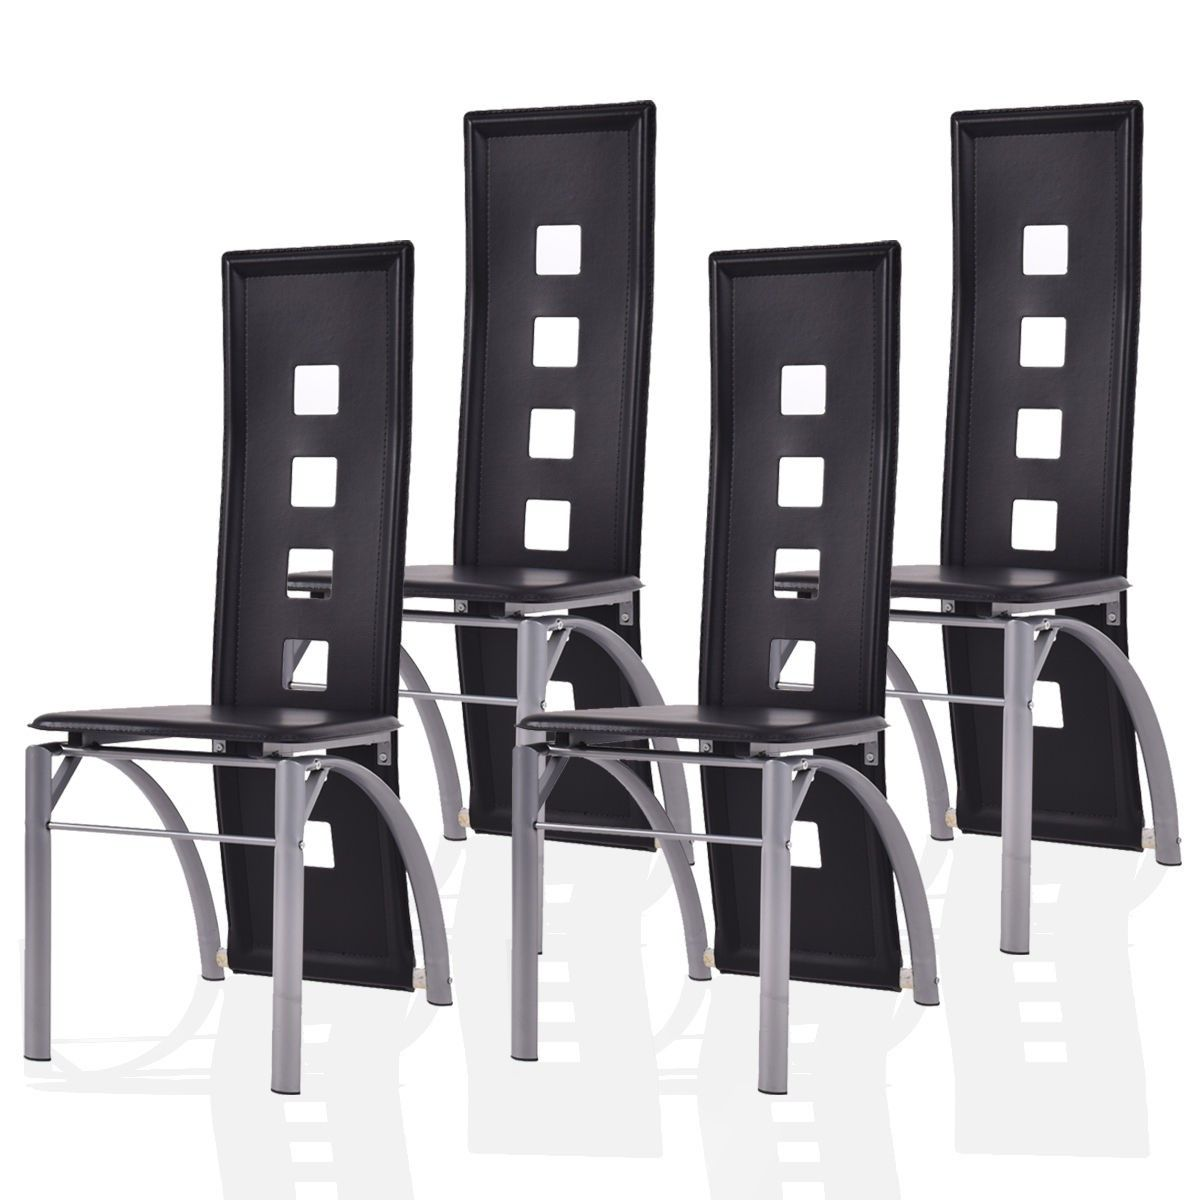 150 Reference Of Black Leather High Back Dining Chair In 2020 Black Kitchen Chairs Dining Chairs Wooden Kitchen Chairs